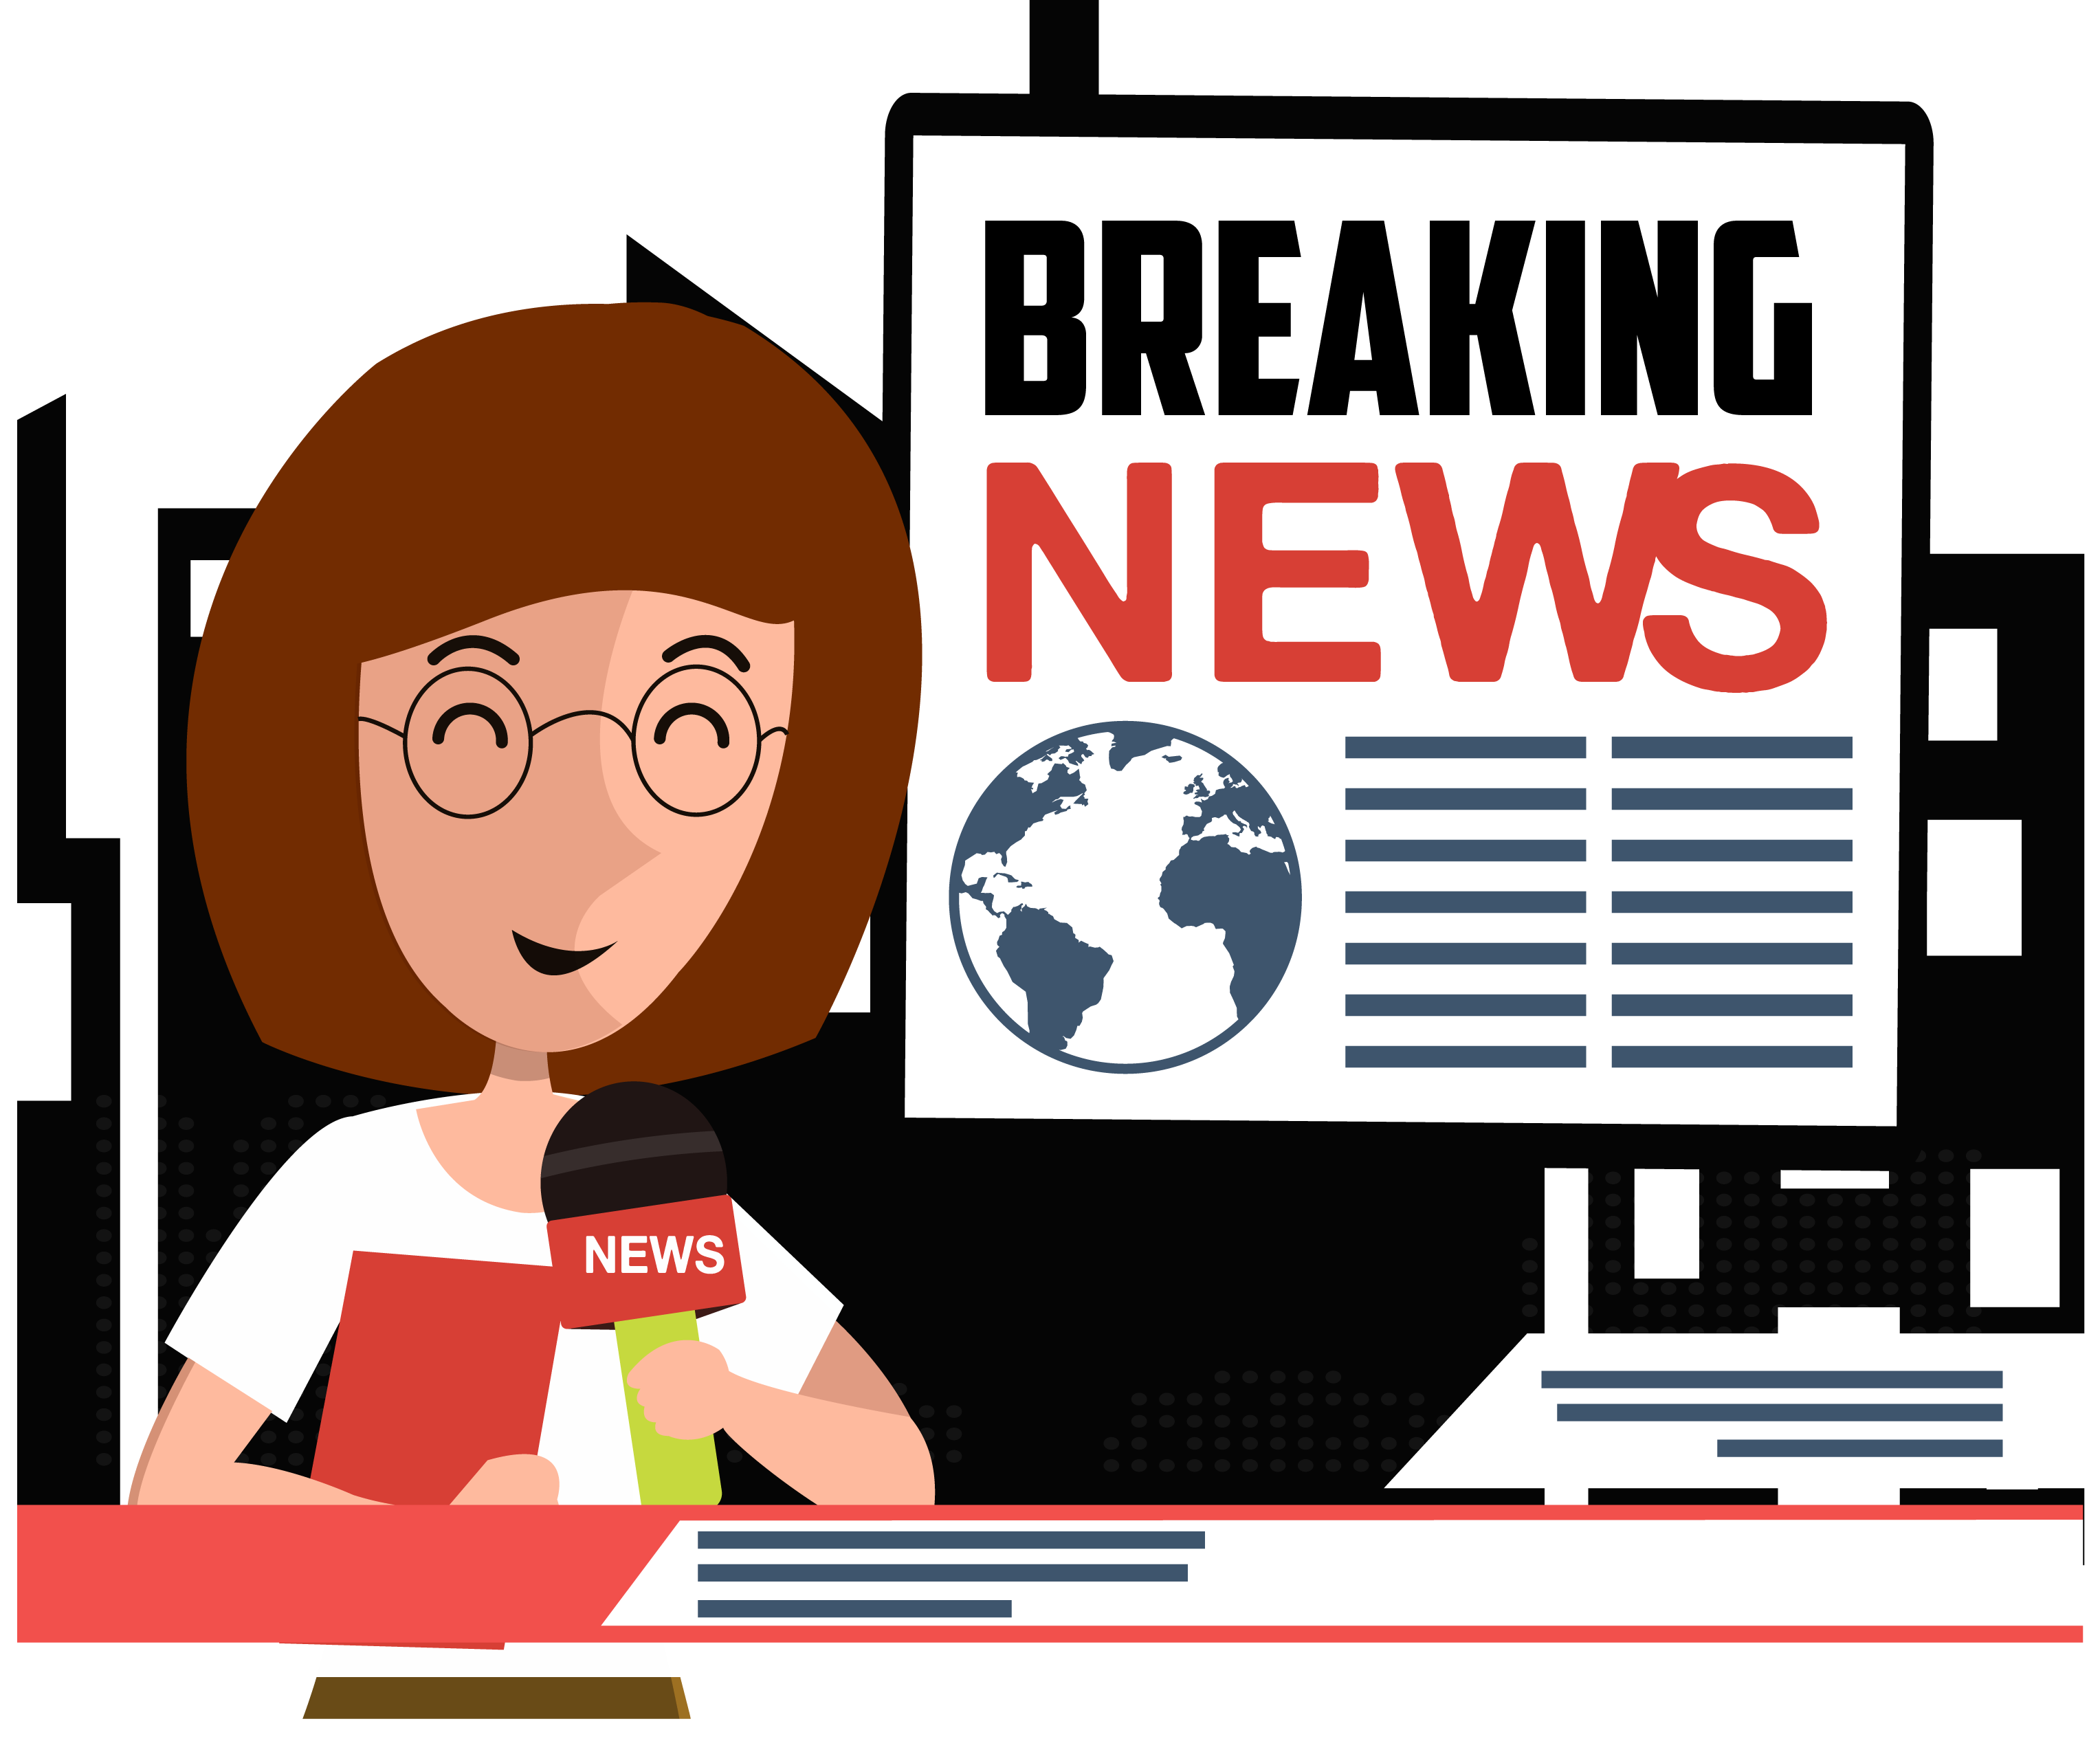 Newspaper clipart journalist. News cartoon illustration anchor